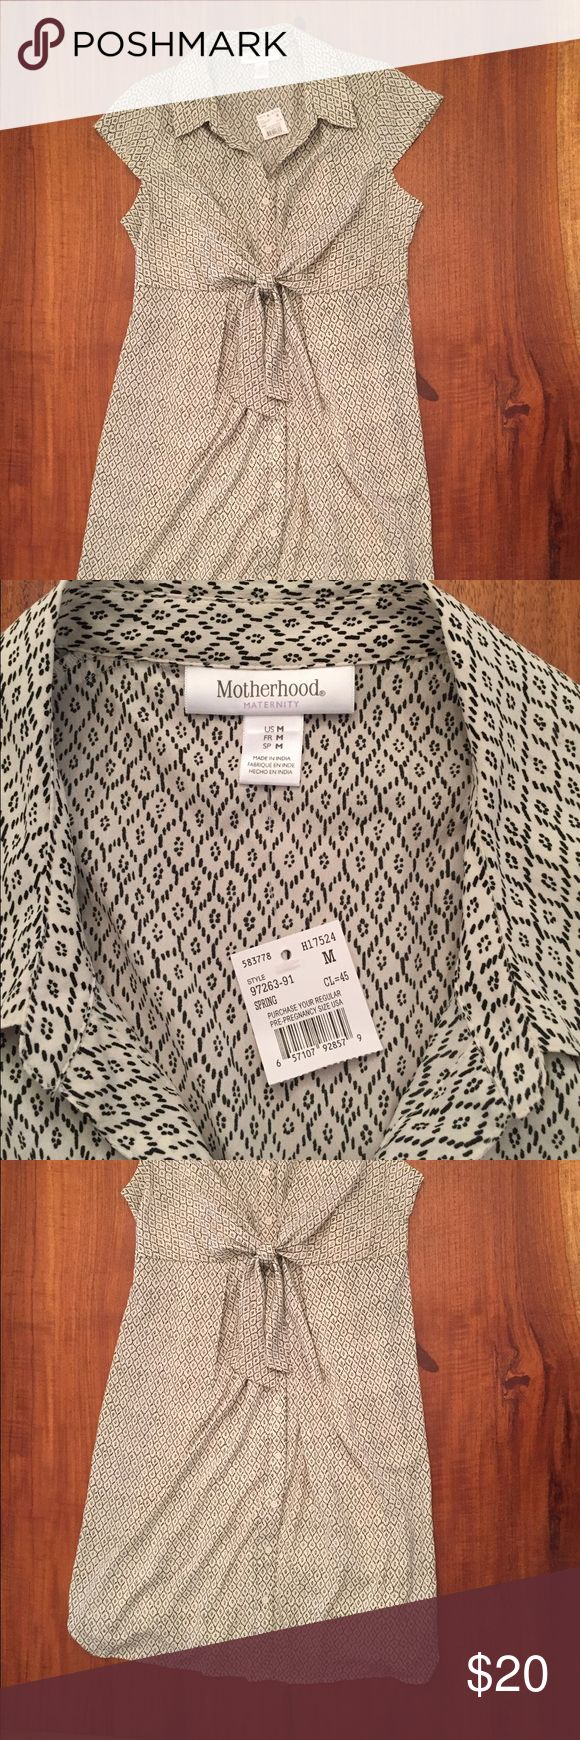 Maternity Work Dress Black and white patterned maternity dress. Lined and perfect for work. New with tags. Motherhood Maternity Dresses